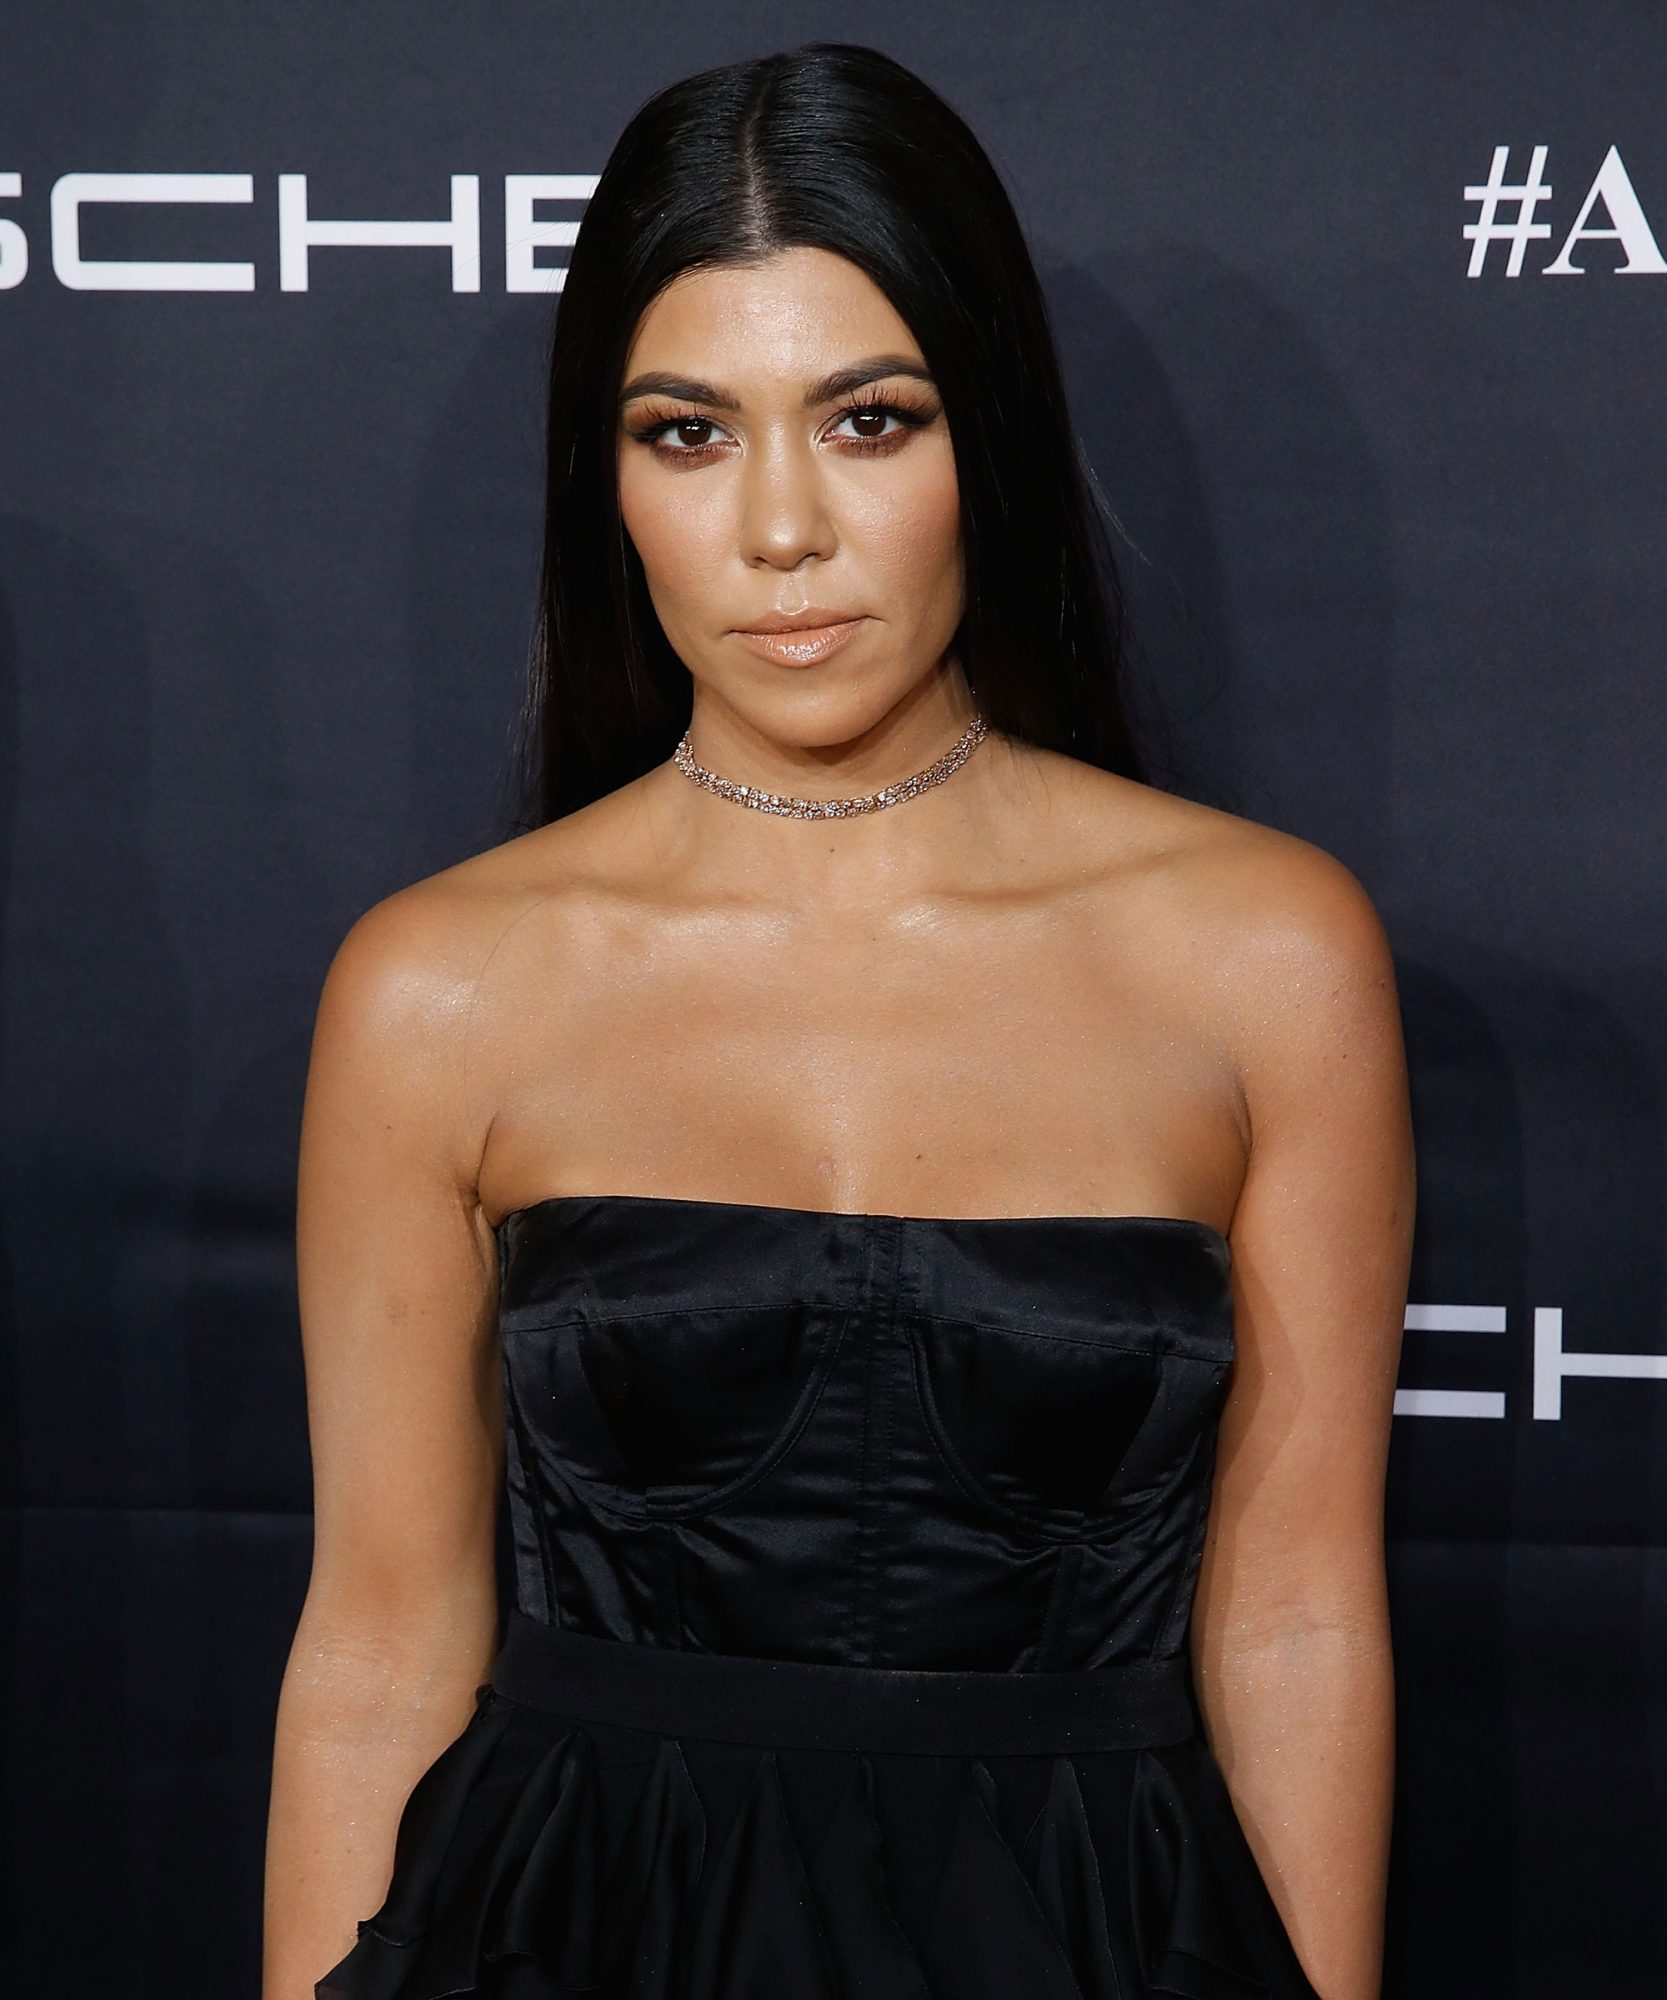 NEW YORK, NY - NOVEMBER 21: ; Kourtney Kardashian attends the 2016 Angel Ball at Cipriani Wall Street on November 21, 2016 in New York City. (Photo by John Lamparski/WireImage)